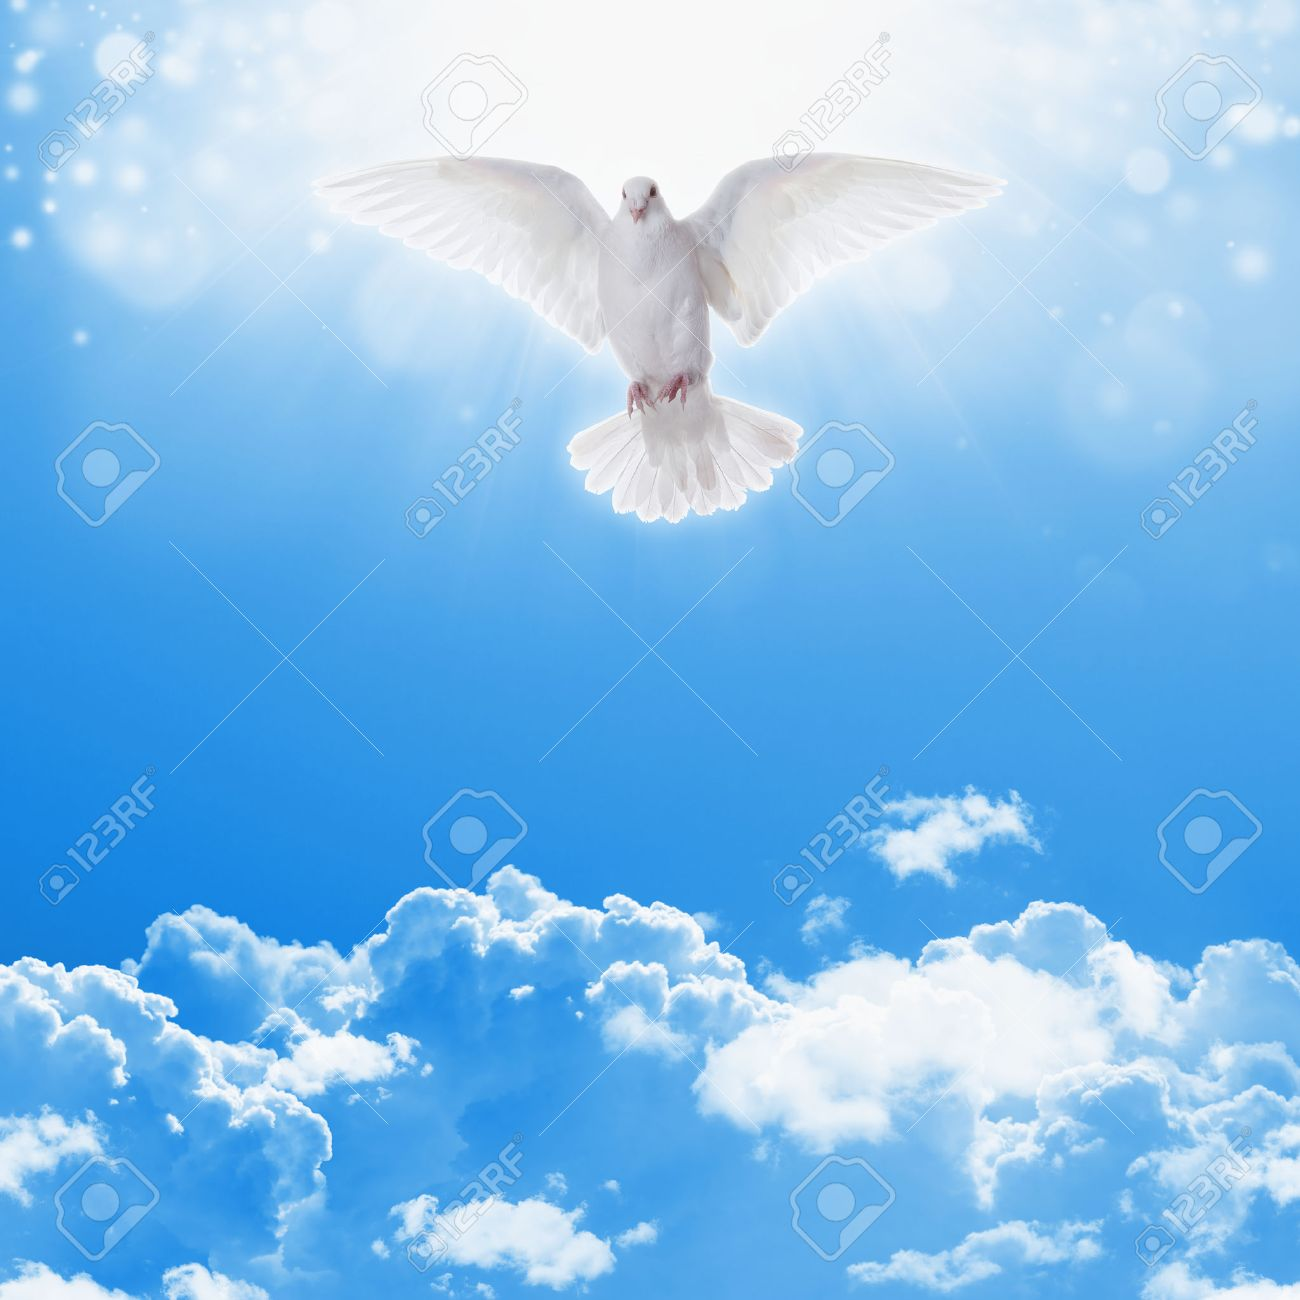 Holy spirit dove flies in blue sky bright light shines from holy spirit dove flies in blue sky bright light shines from heaven christian symbol biocorpaavc